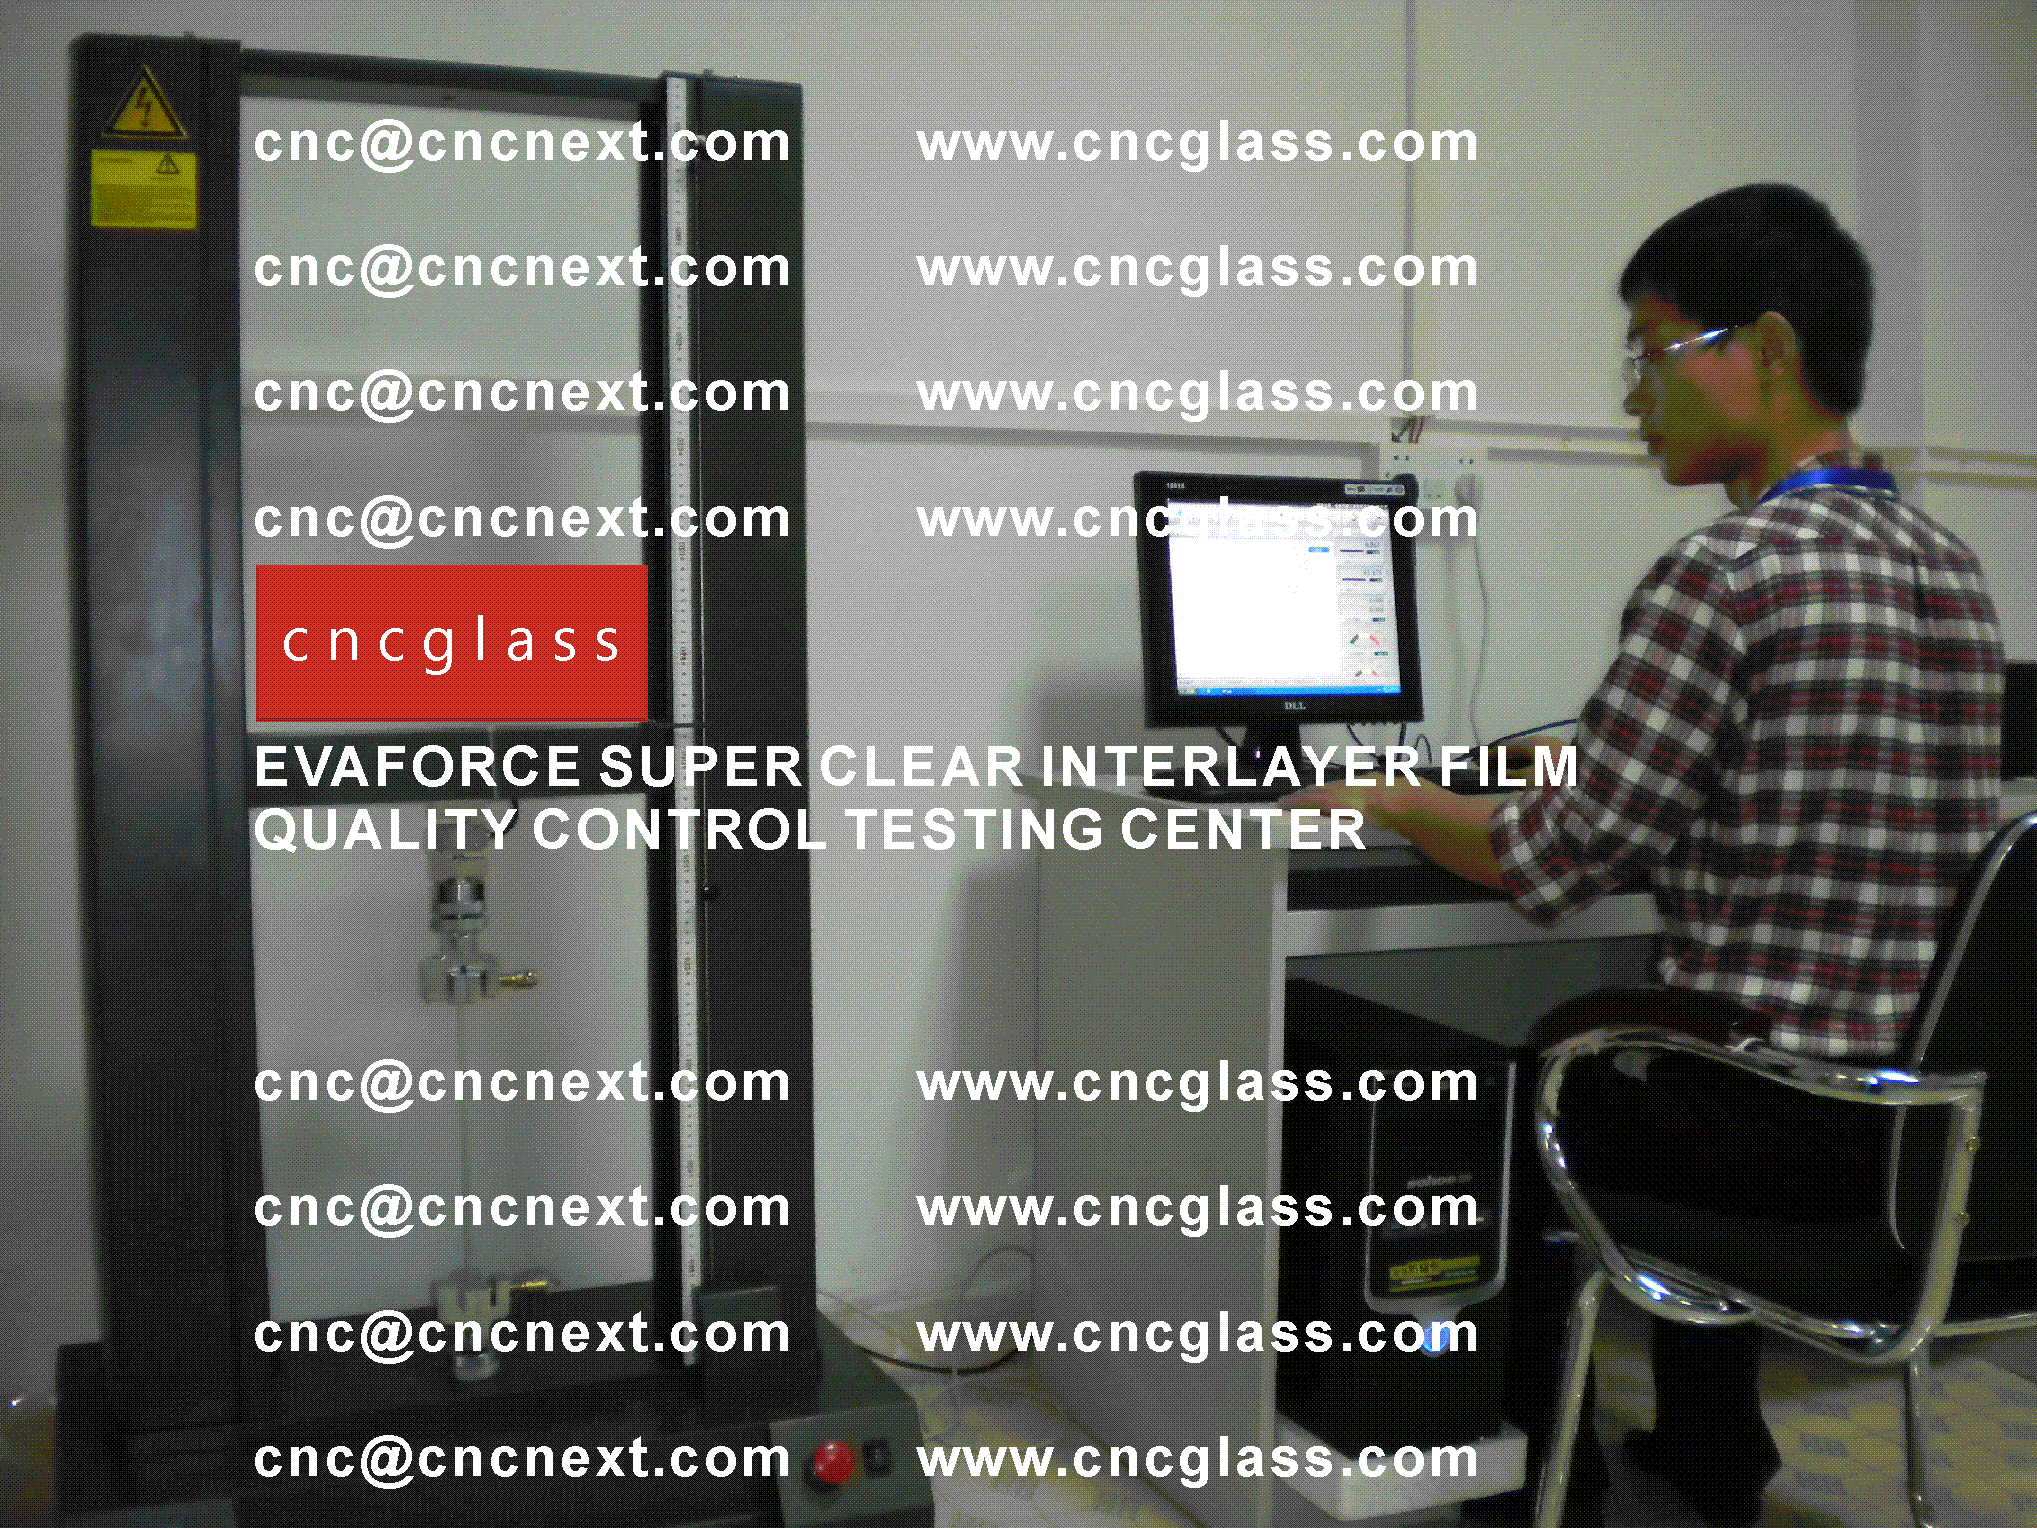 002 Quality Control of EVAFORCE SUPER CLEAR INTERLAYER FILM